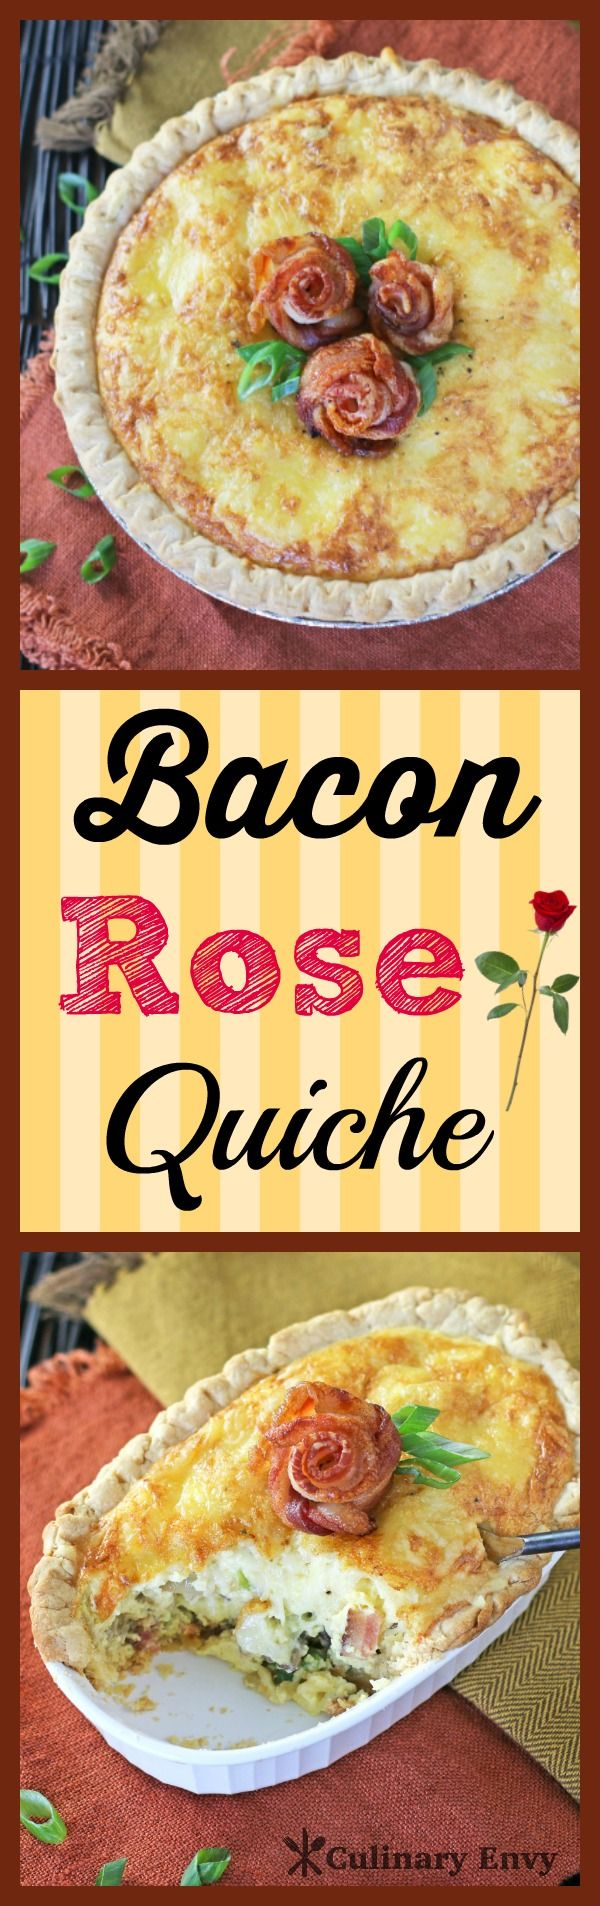 Best 25 bacon roses ideas on pinterest diy father 39 s day for The best quiche ever